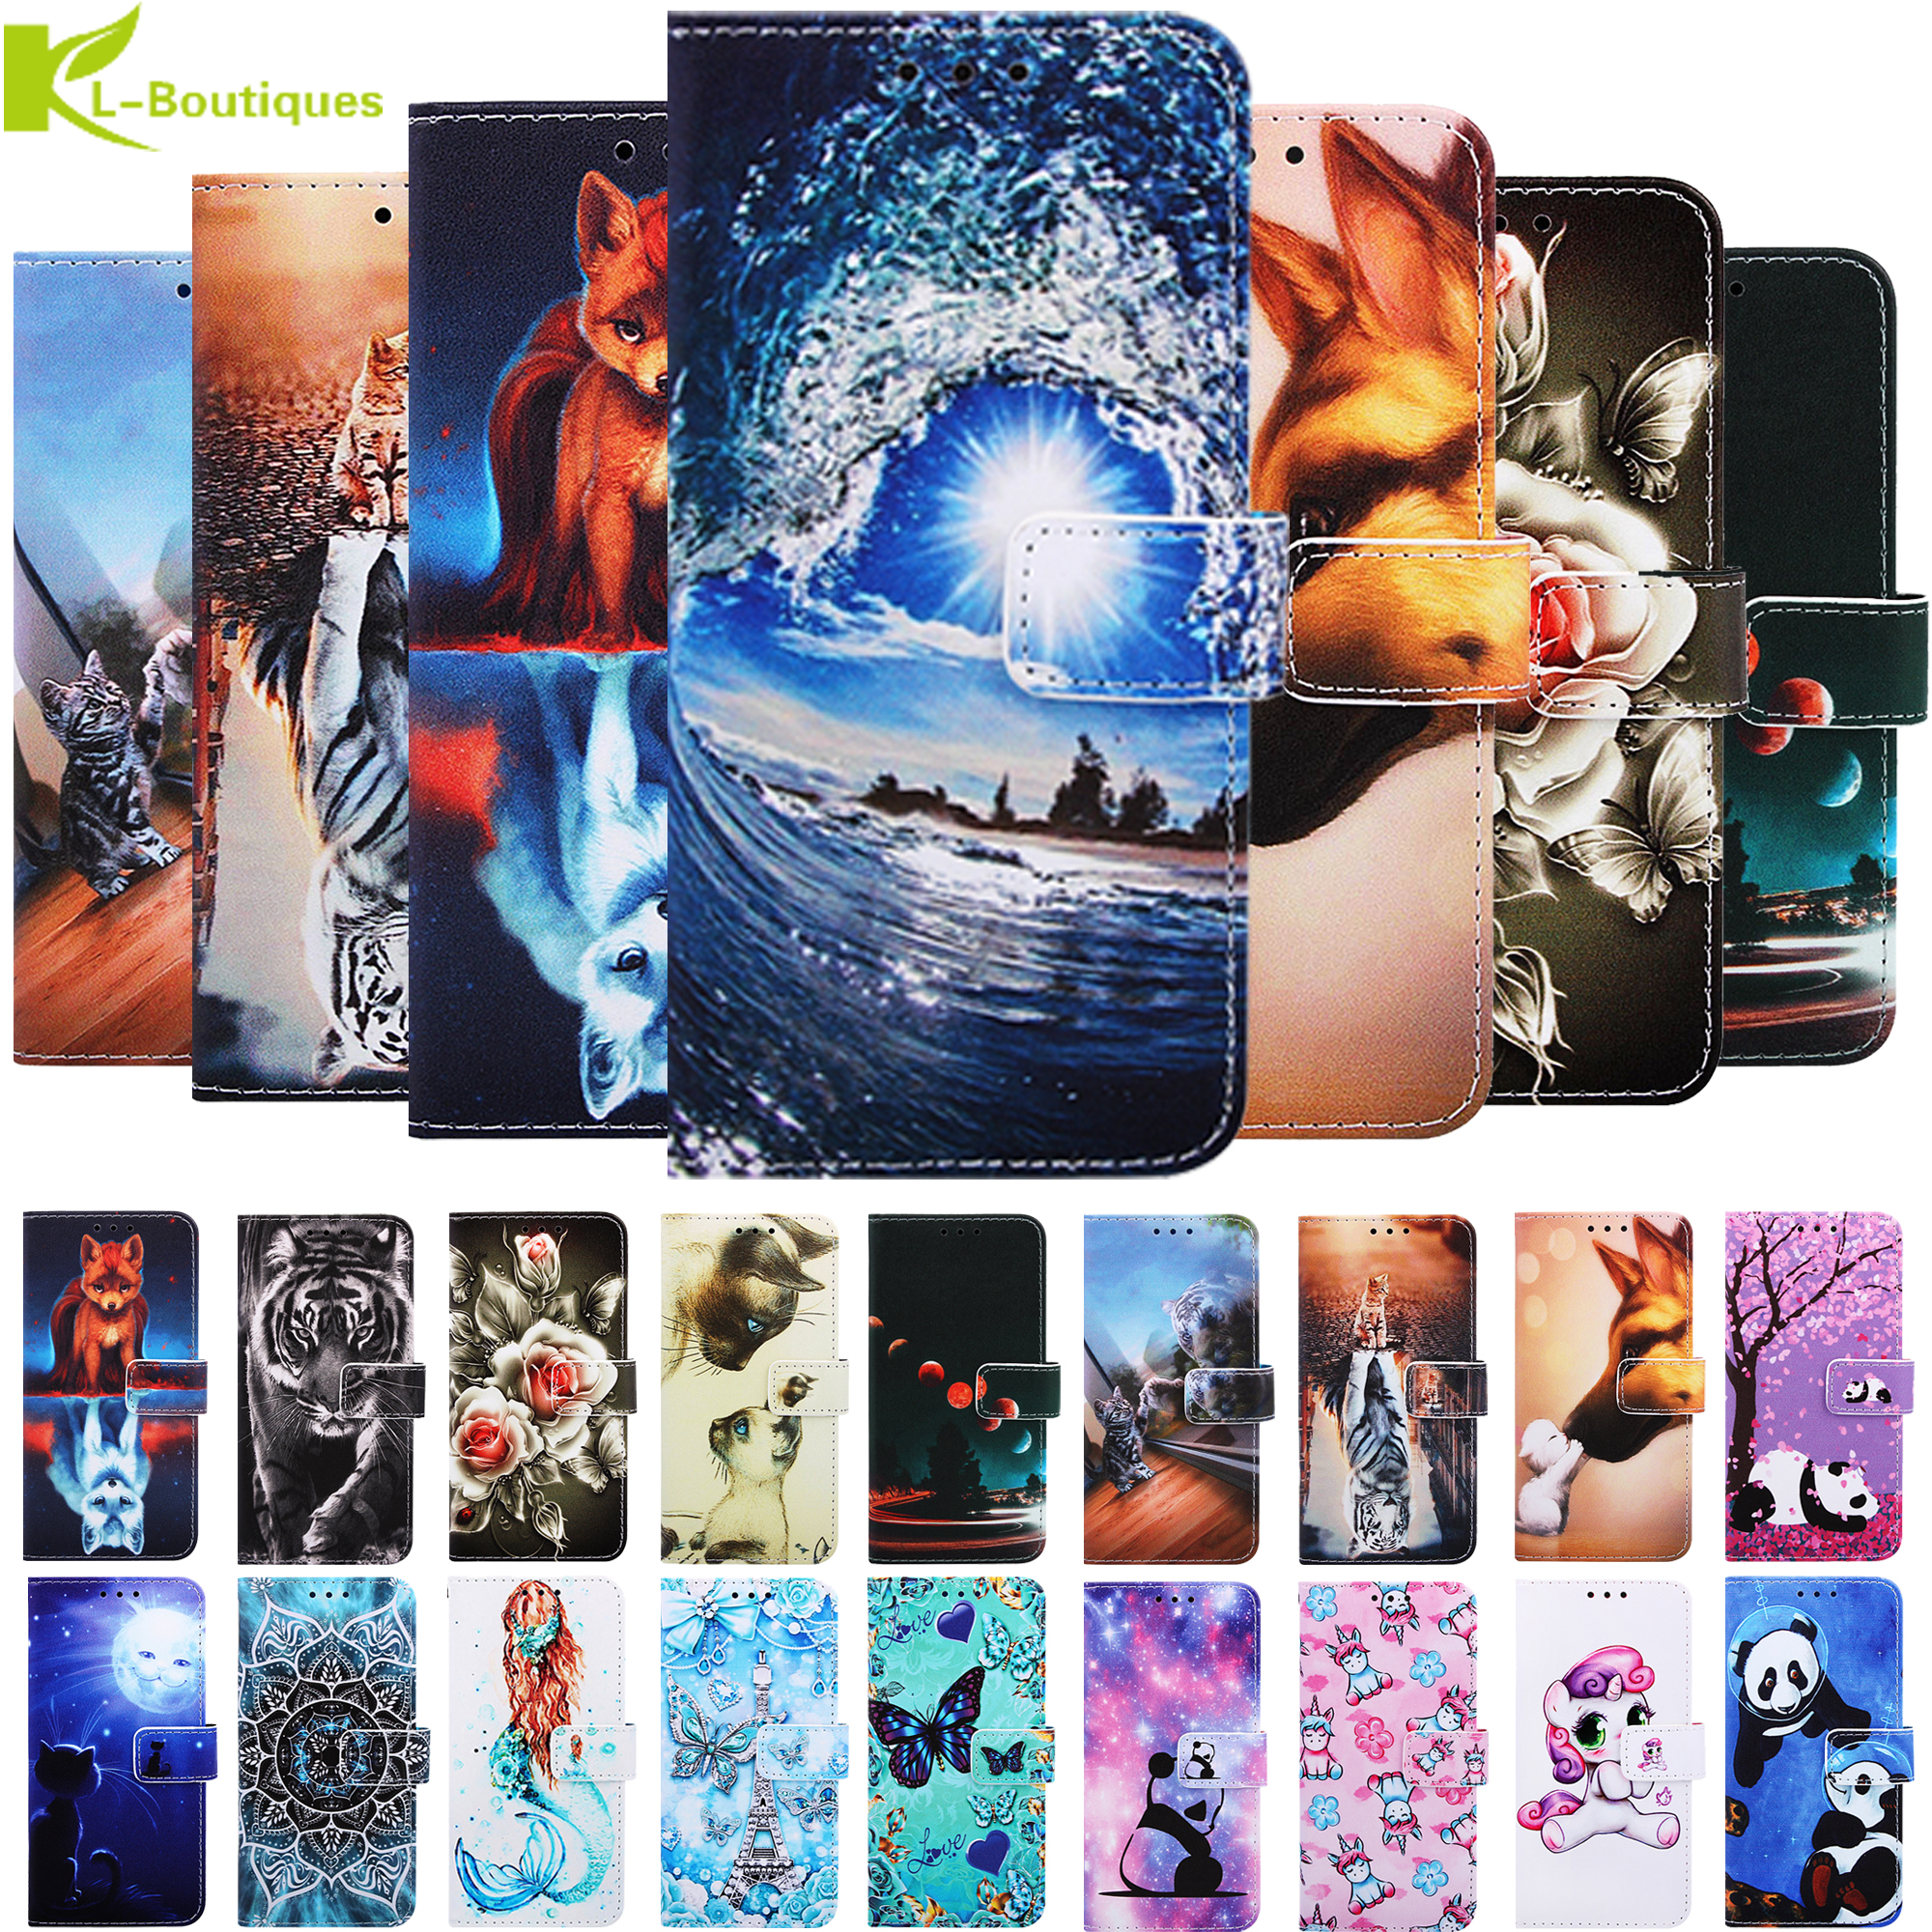 A01 Case For Samsung Galaxy A 01 A015F SM-A015F SM-A015G SM-A015M Coque For Samsung A21 SM-A215F/DS Flip Painted Leather Cover